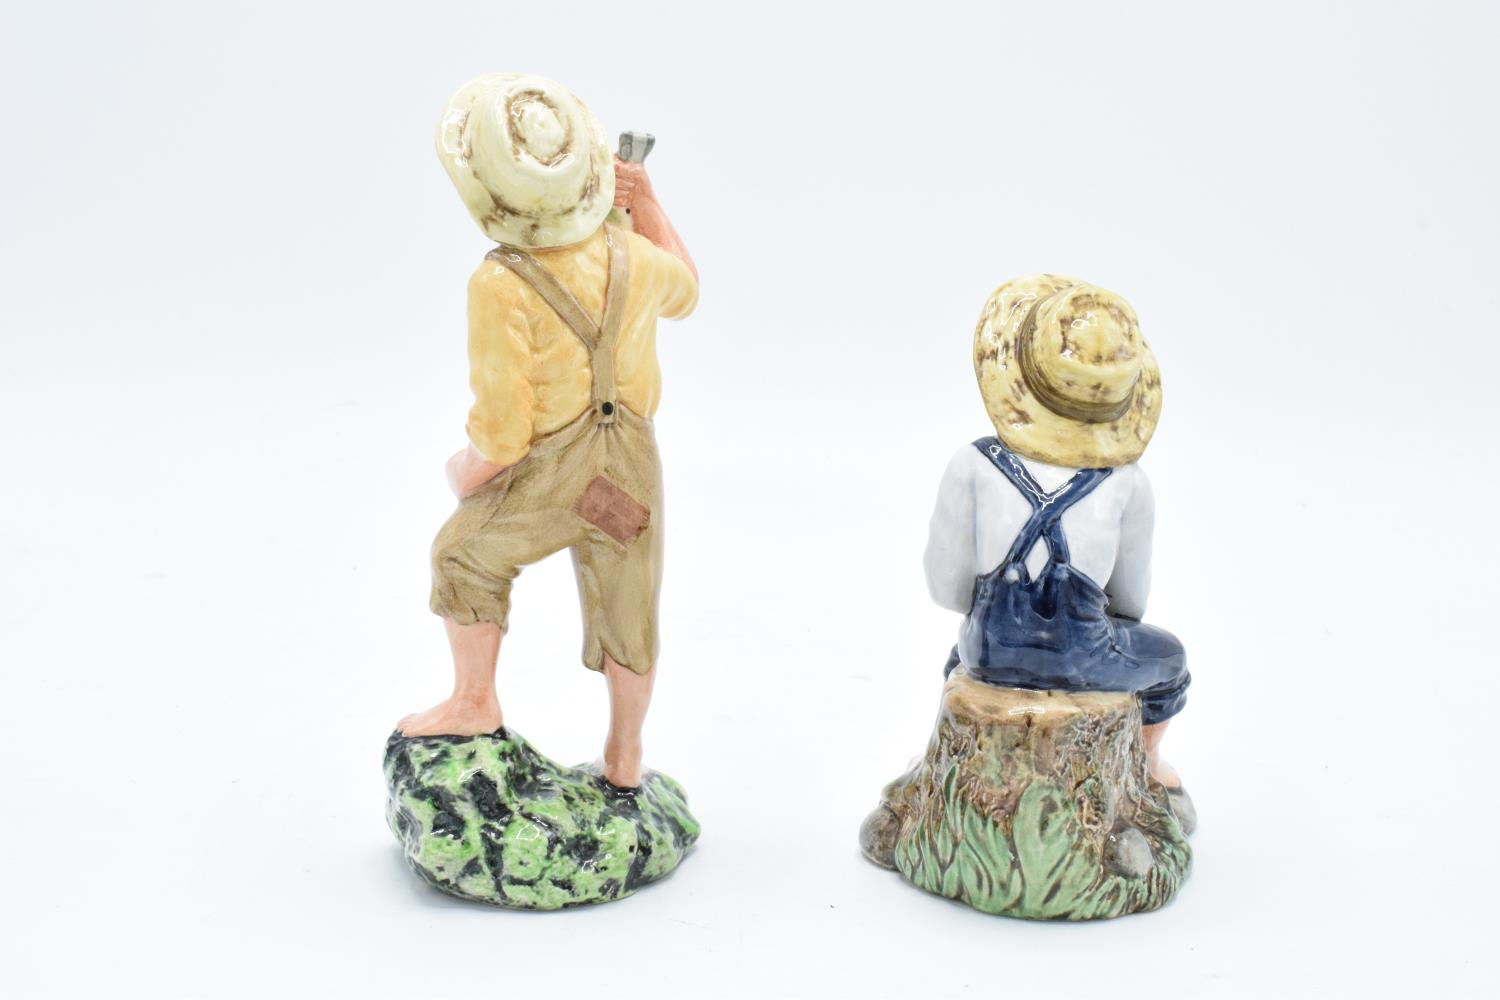 Royal Doulton character figures Huckleberry Finn HN2927 and Tom Sawyer HN2926 (2). In good condition - Image 2 of 3